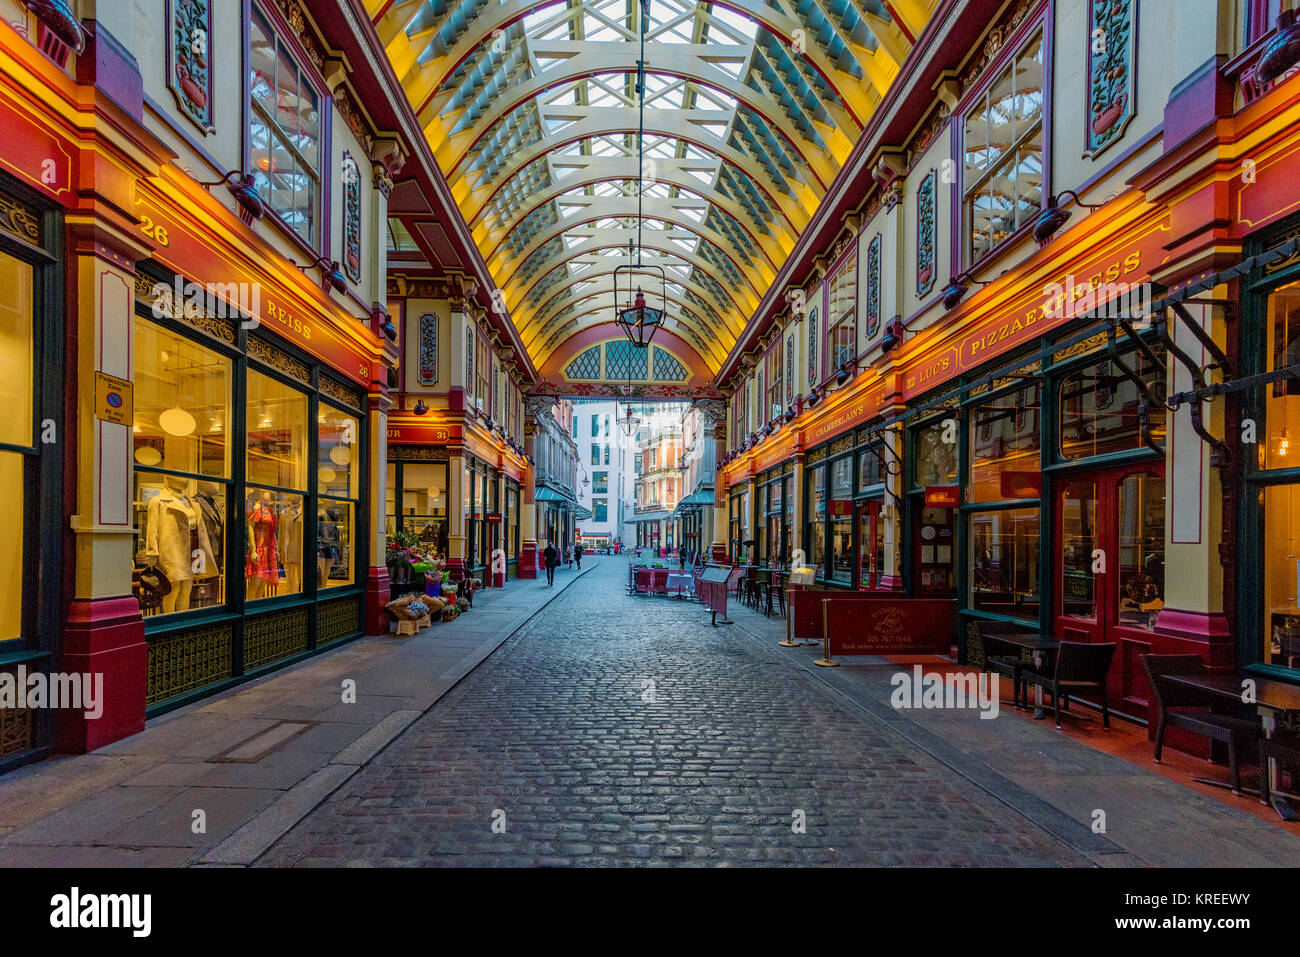 LONDON, UNITED KINGDOM - NOVEMBER 06: View of Leadenhall Market, a famous shopping arcade with traditional British - Stock Image